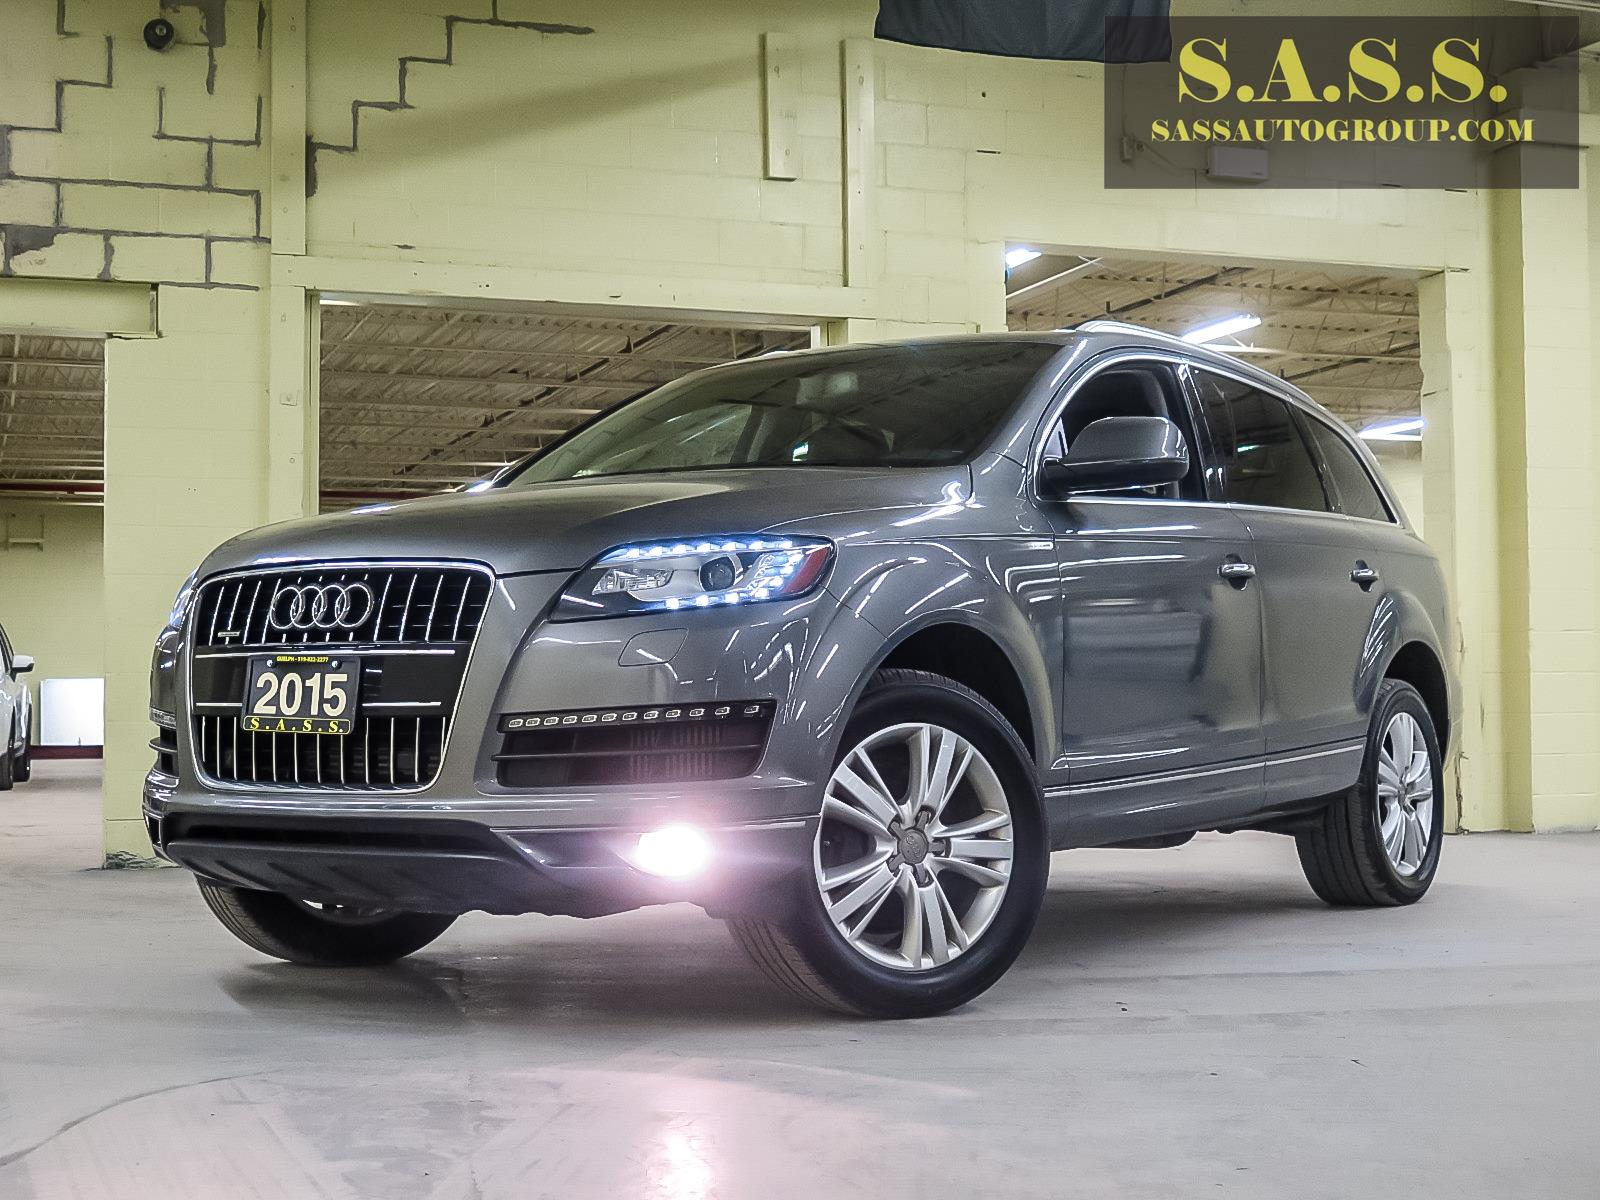 Charcoal Grey Audi Q7 Diesel Crossover car